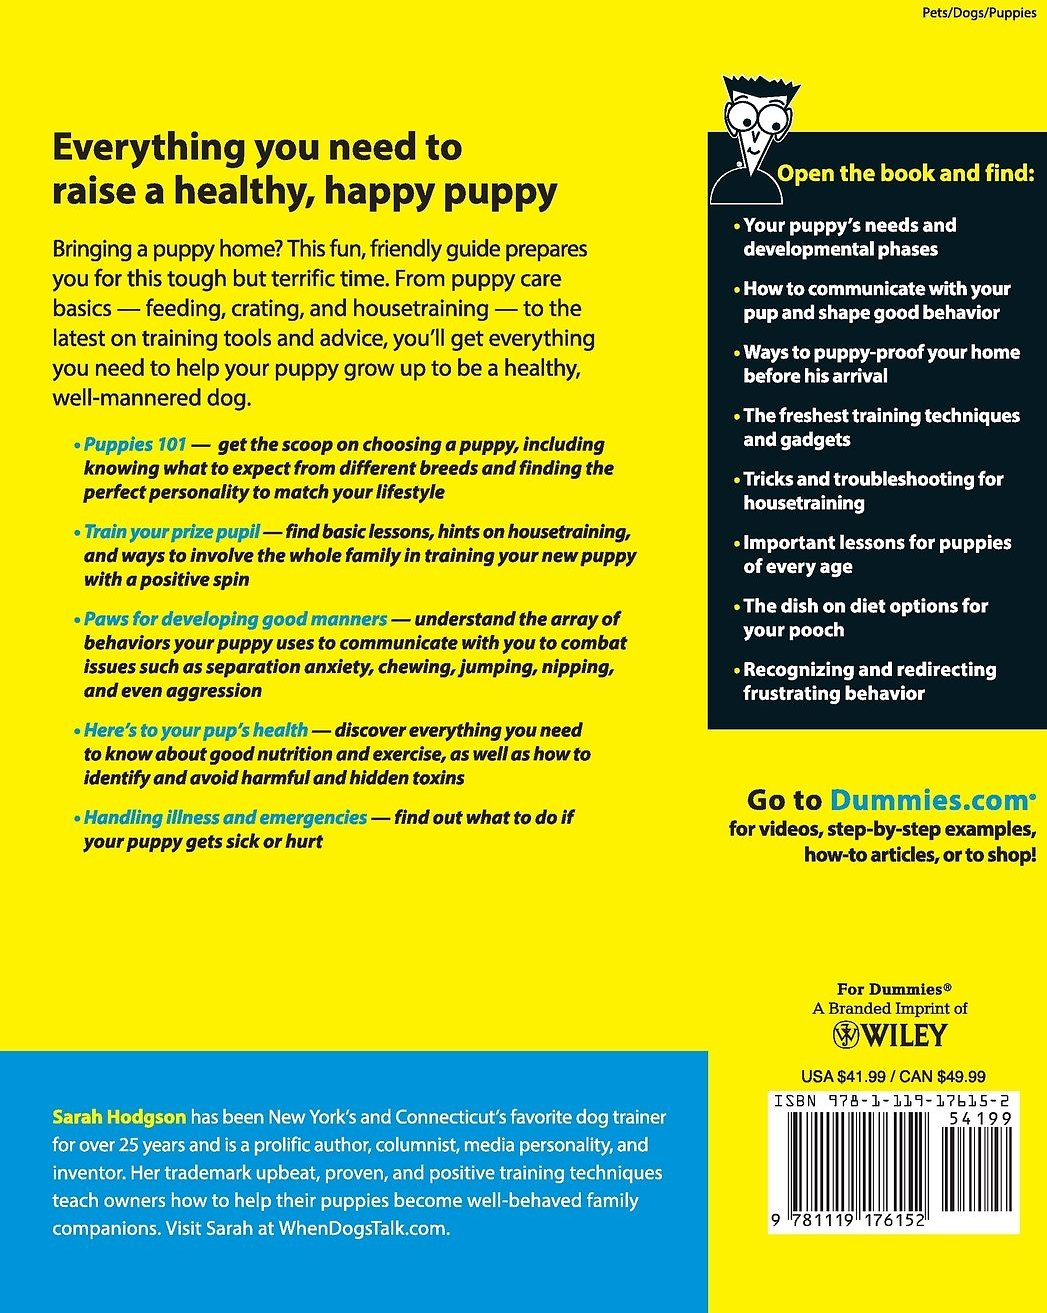 puppies for dummies 3rd edition pdf